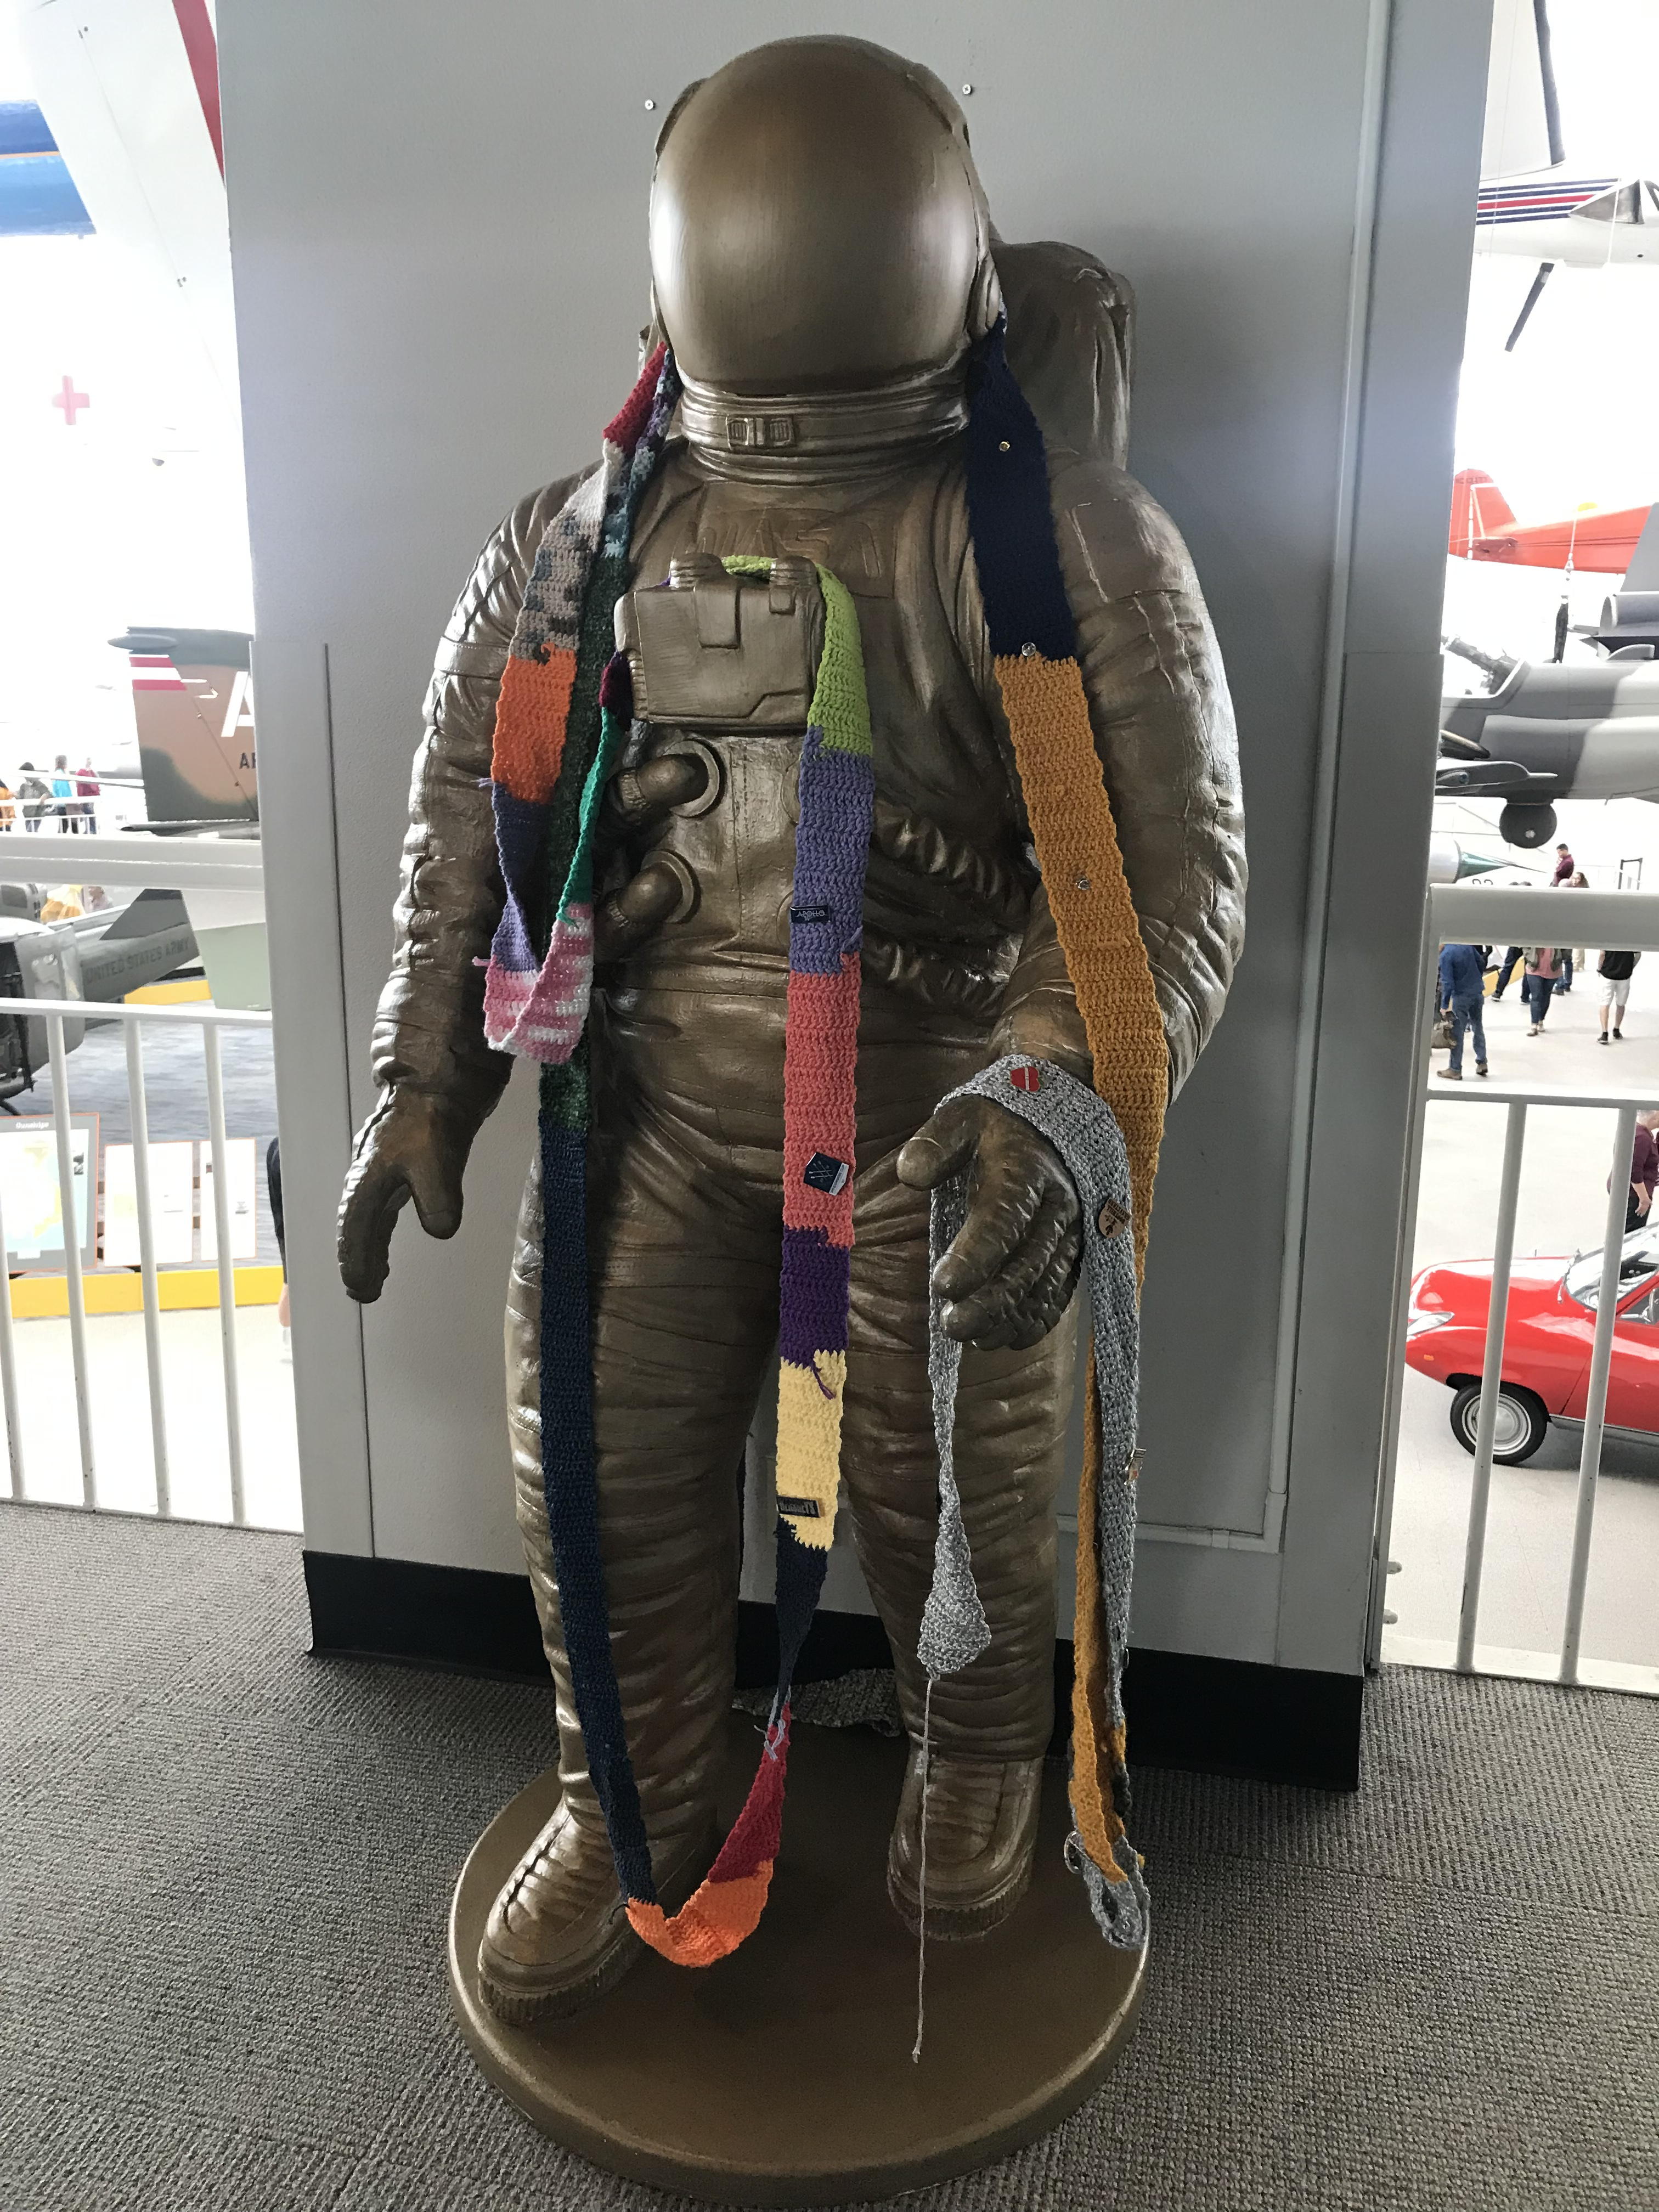 The Ugly Scarf at the Museum of Flight